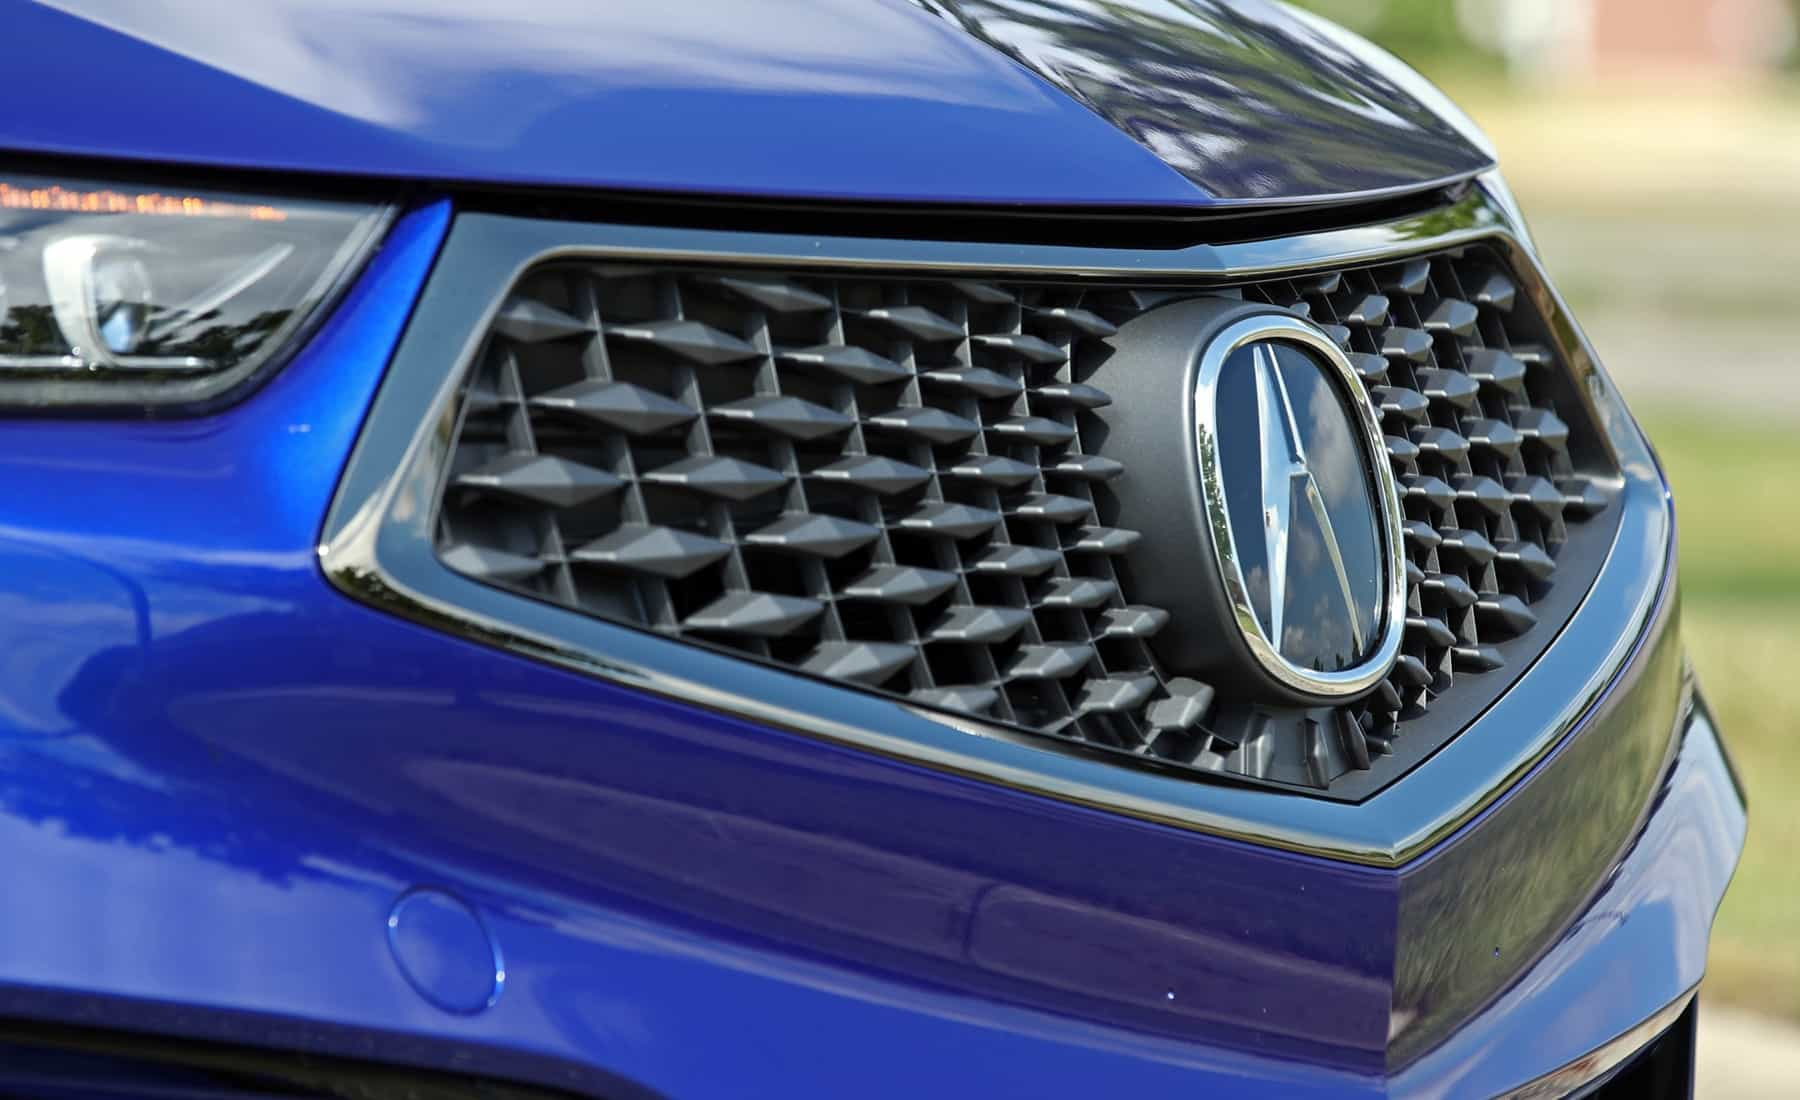 2018 Acura TLX Exterior View Grille (Photo 8 of 46)